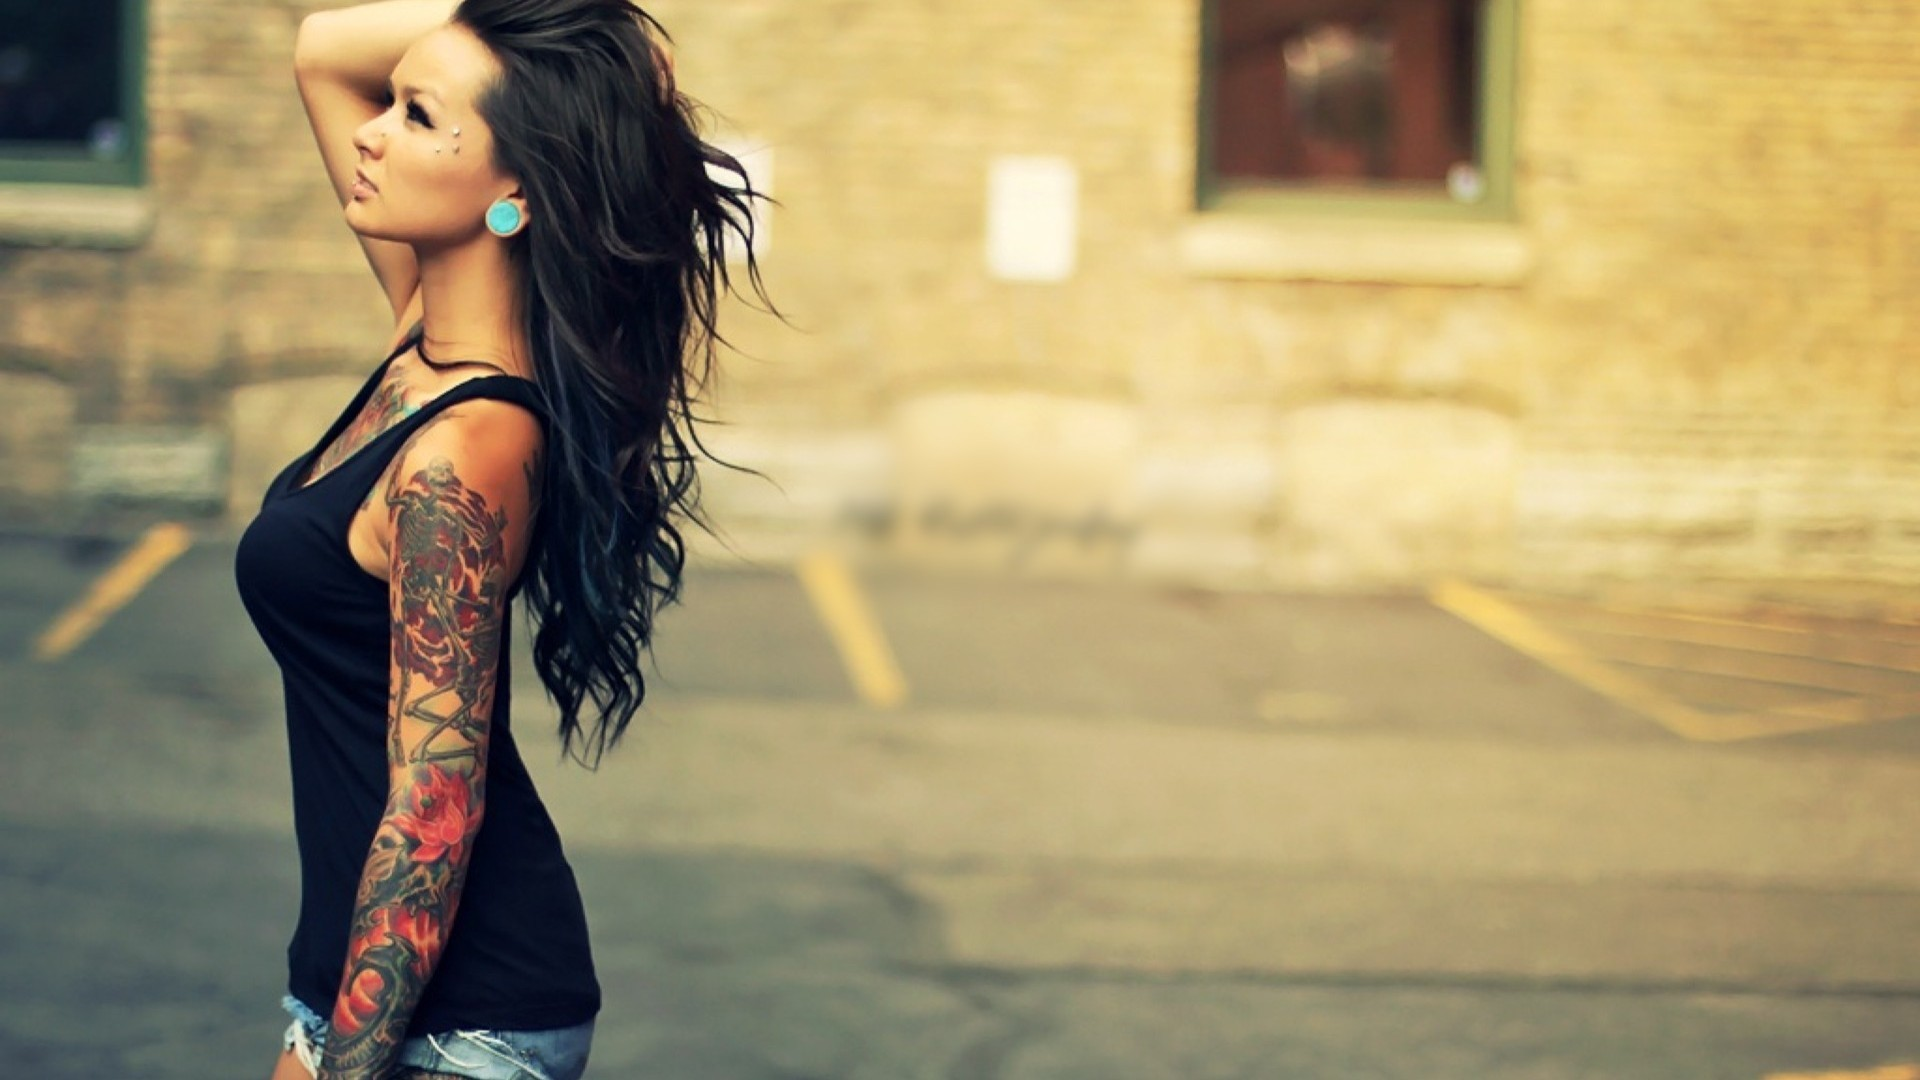 1920x1080 Tattoo Girl Wallpapers High Quality Download Free | HD Wallpapers |  Pinterest | Hd wallpaper, Wallpaper and Tattoo